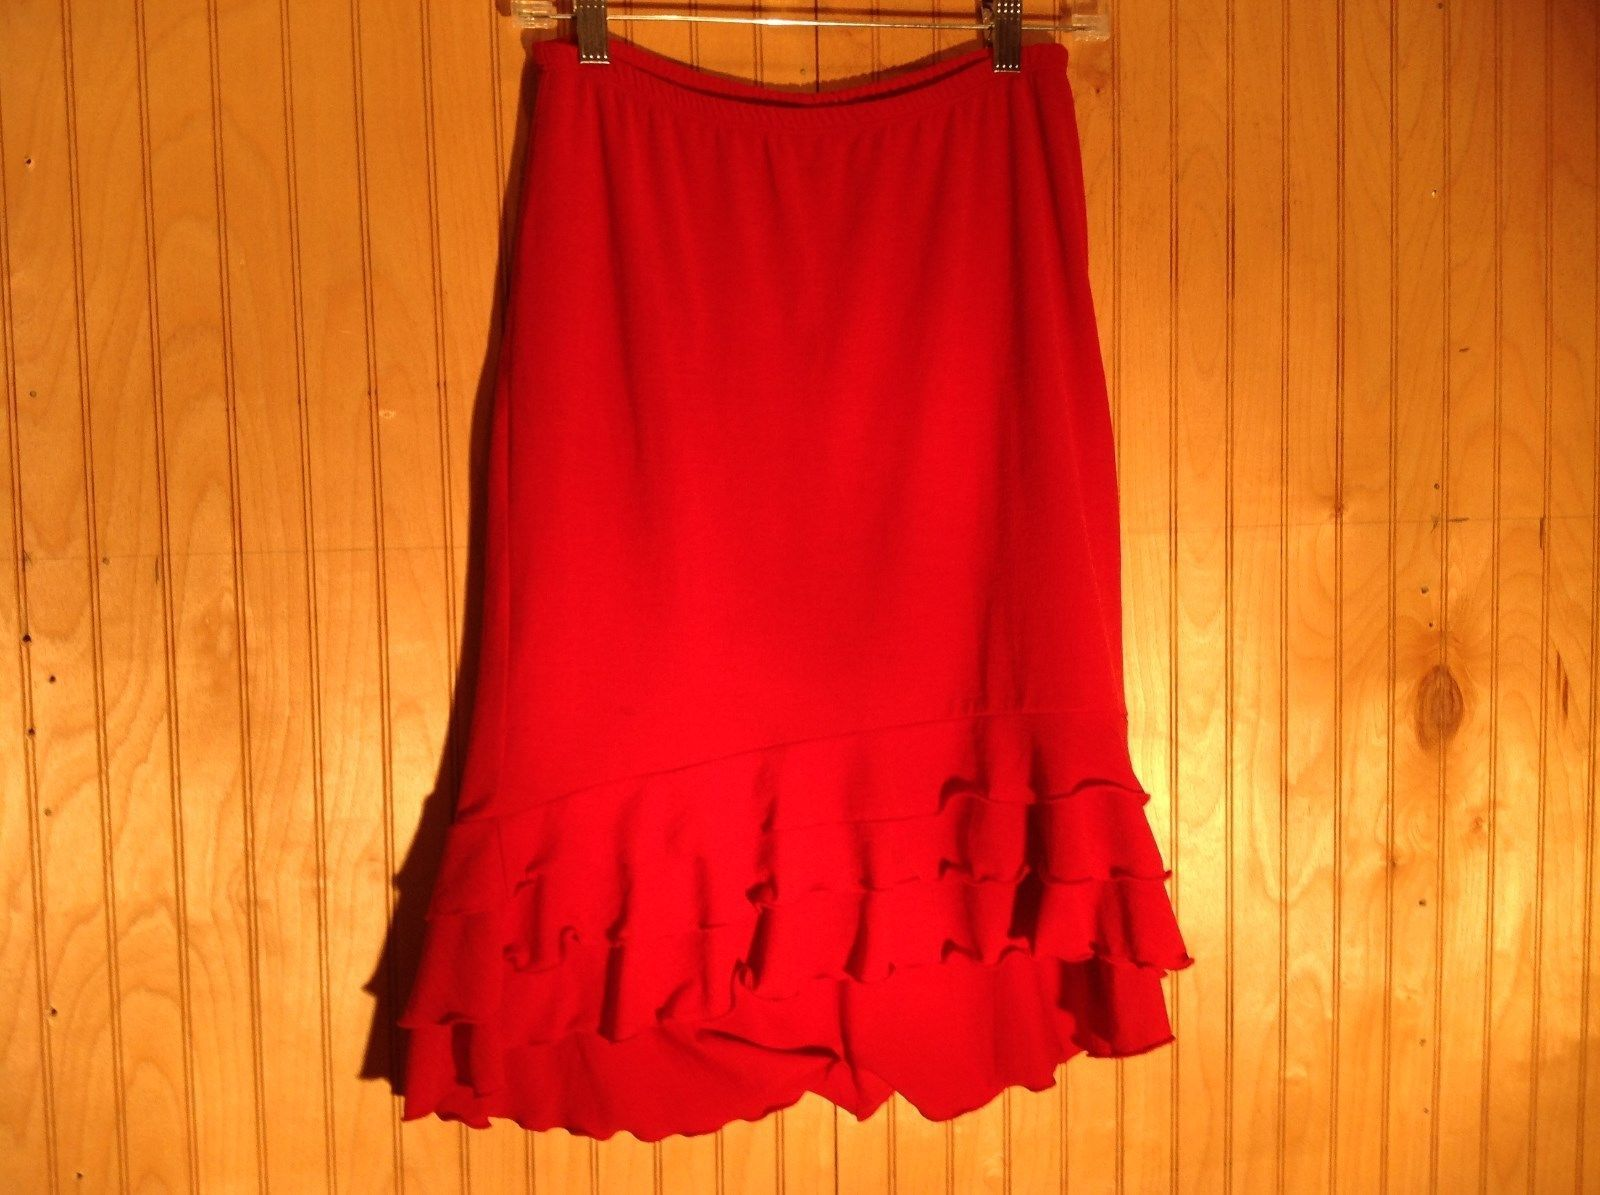 Red Skirt with Elastic Waist Ruffles at Bottom by Wet Seal Measurements Below